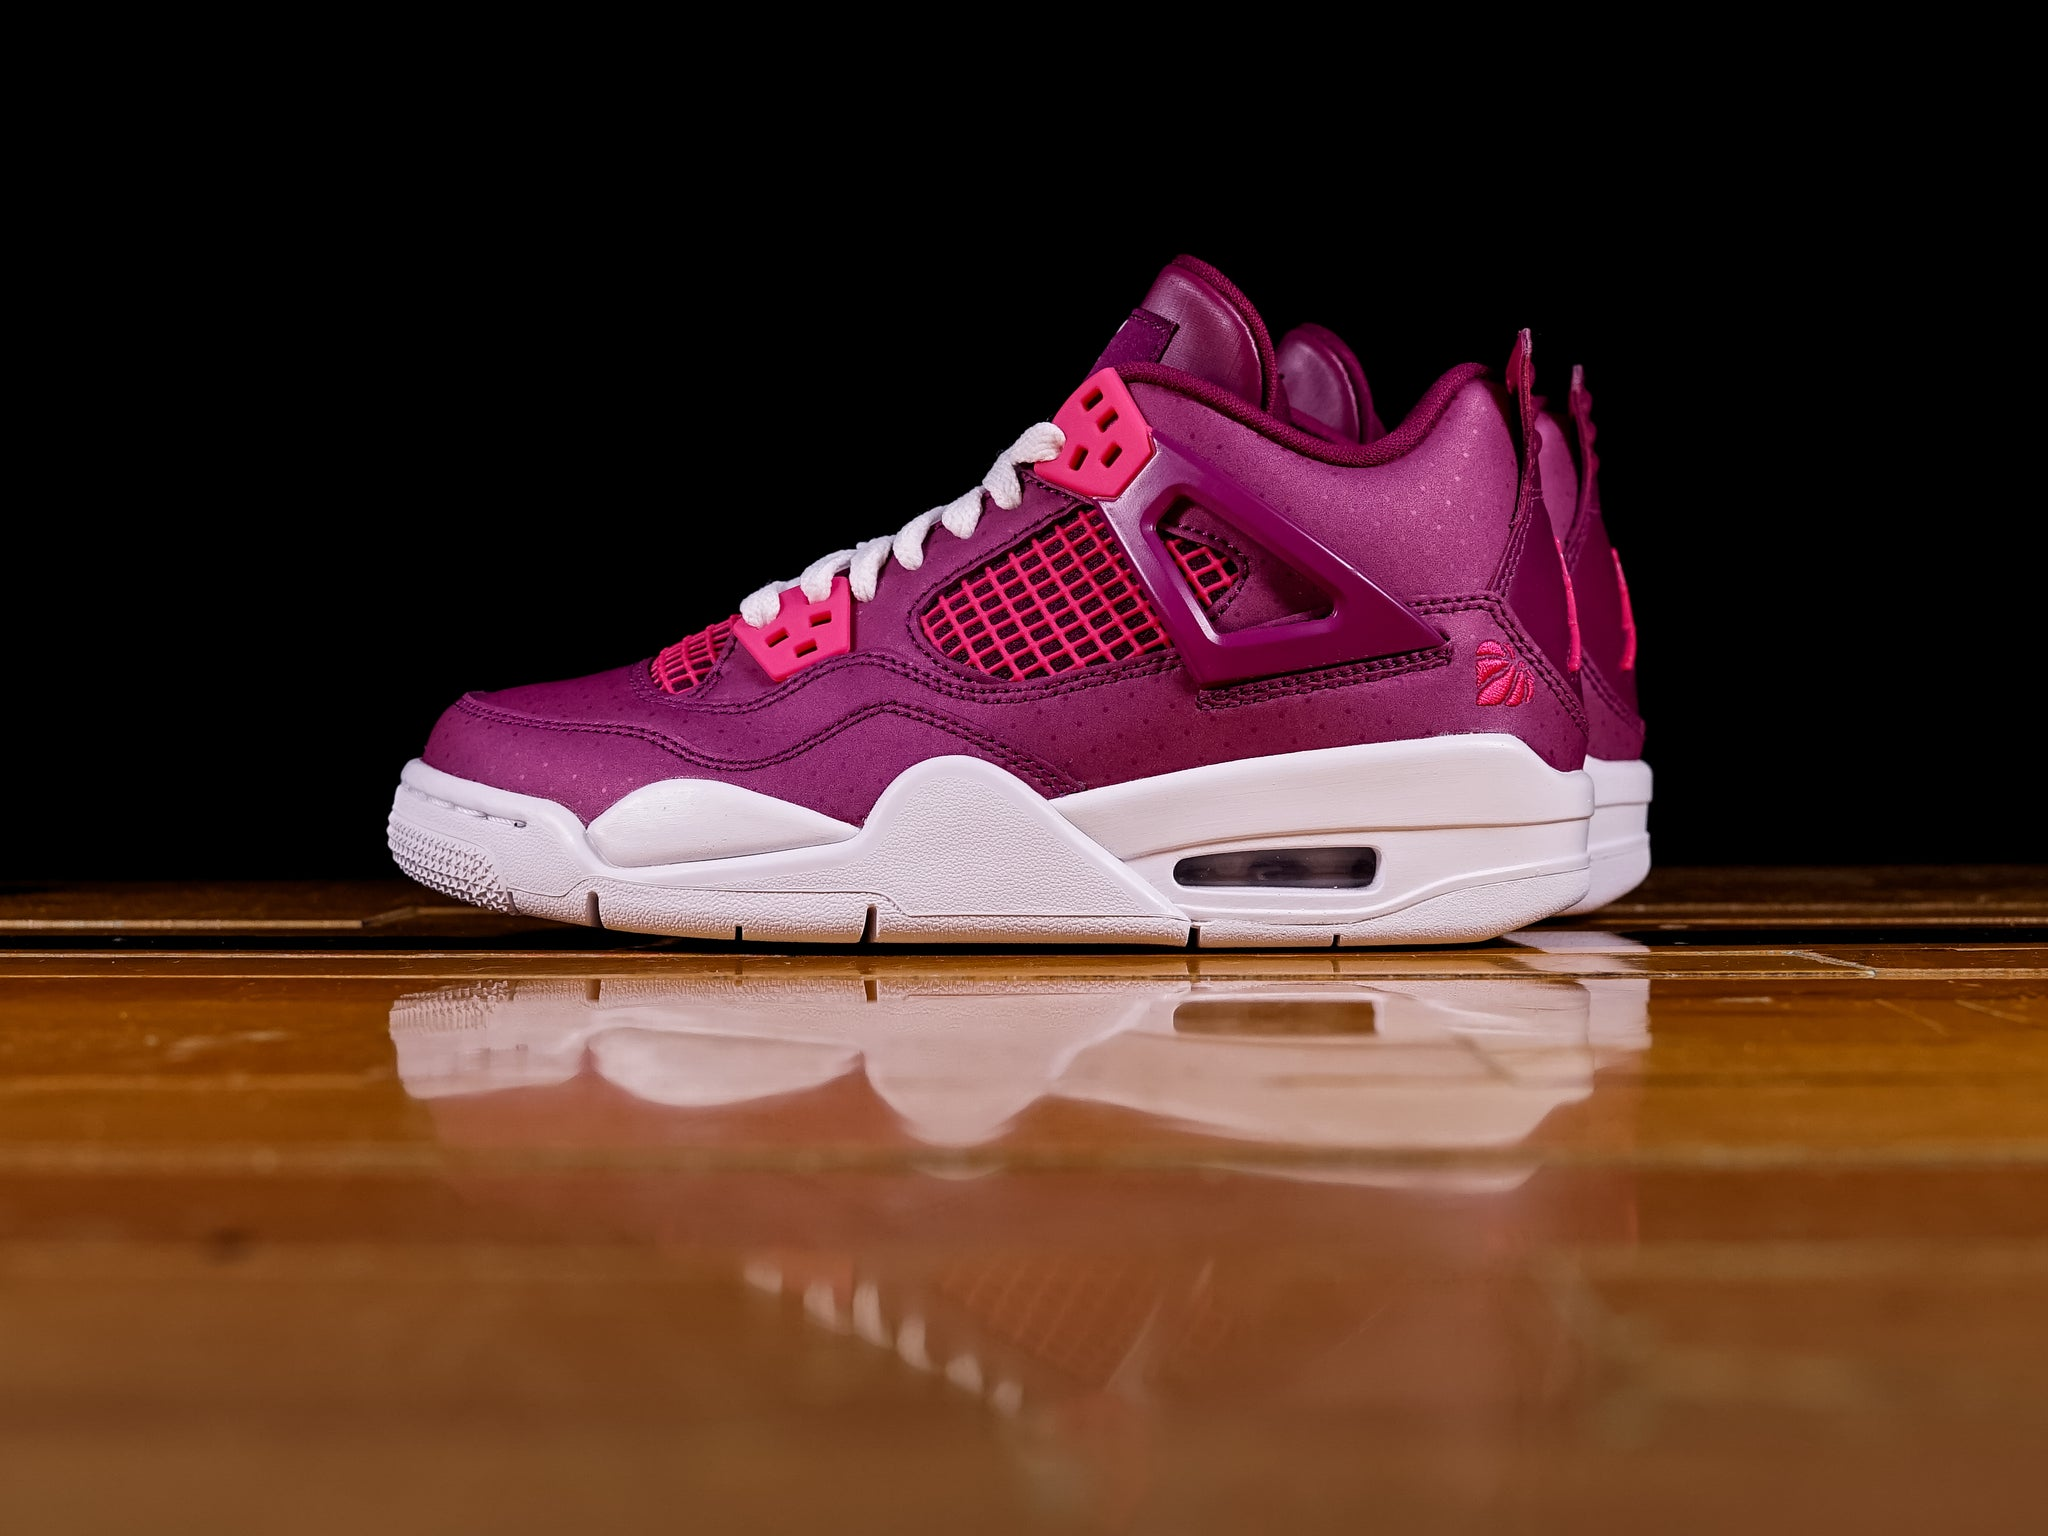 super popular 98b64 3eade Kid's Air Jordan Retro 4 'Valentine's Day' (GS) [487724-661]